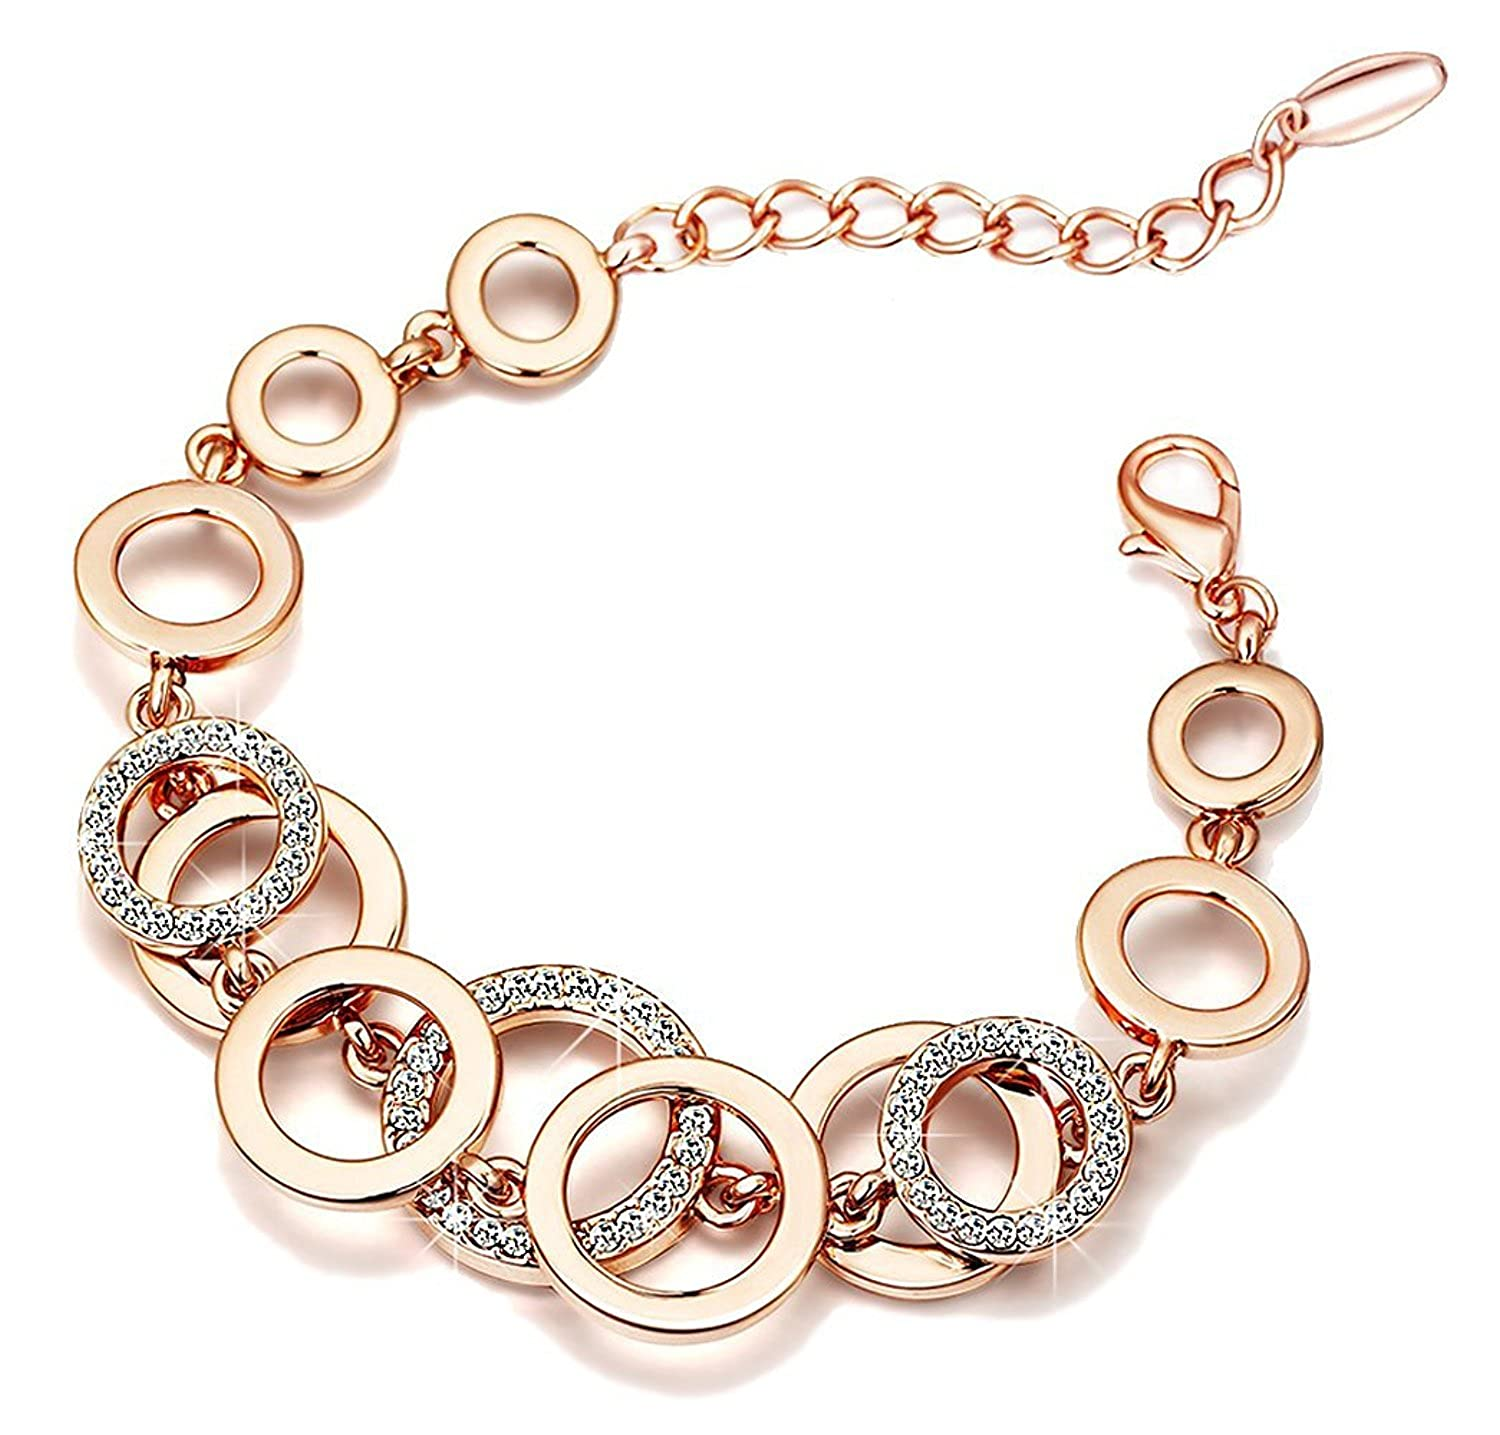 DEALS ON Yutii Rakhi Gift for Sister Circle Links Rose Gold Crystals Bracelet For Girls and Women